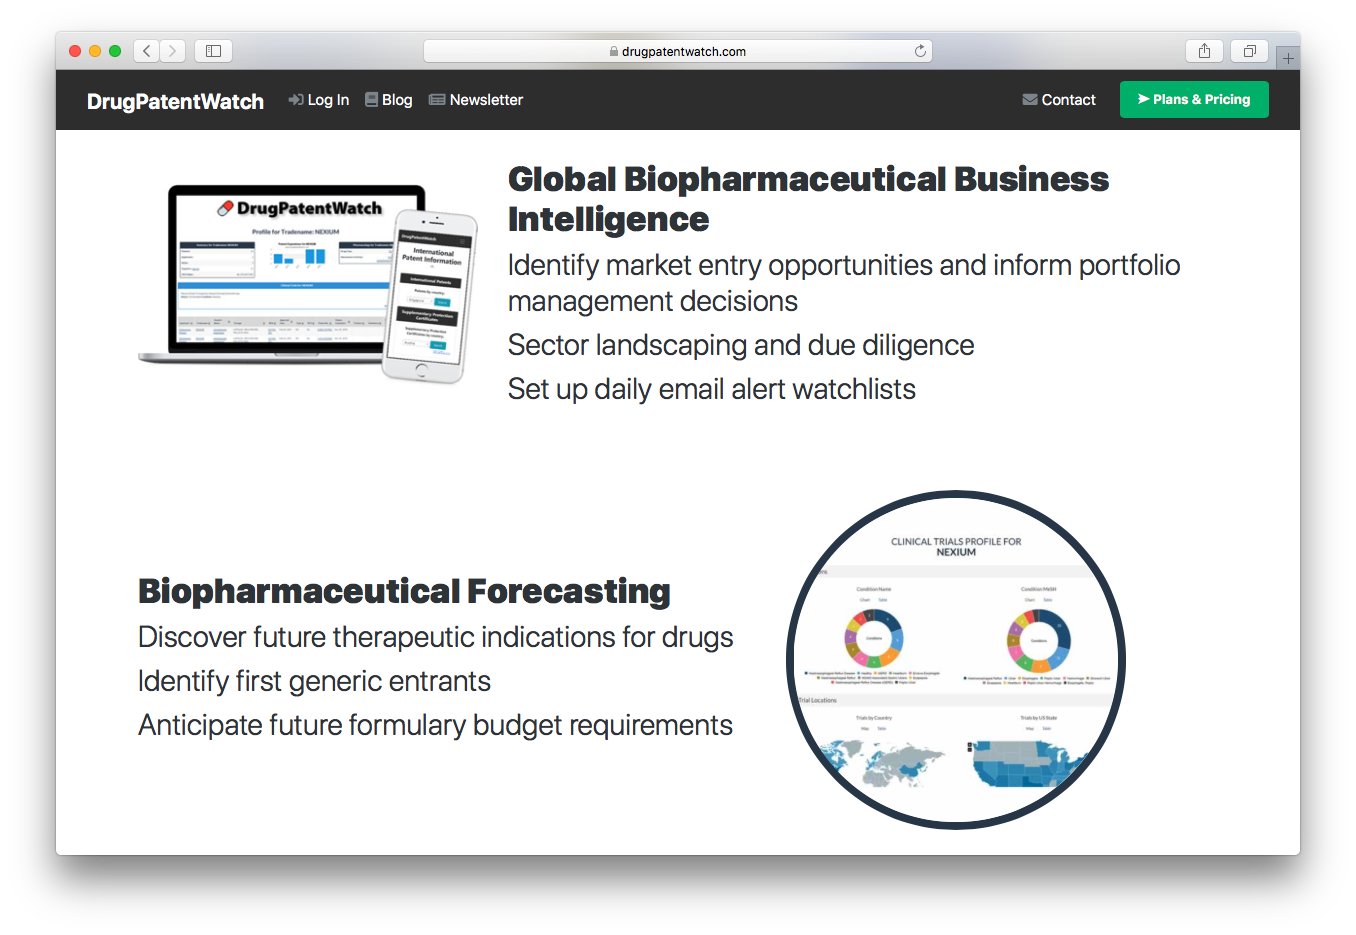 DrugPatentWatch global biopharmaceutical business intelligence forecasting